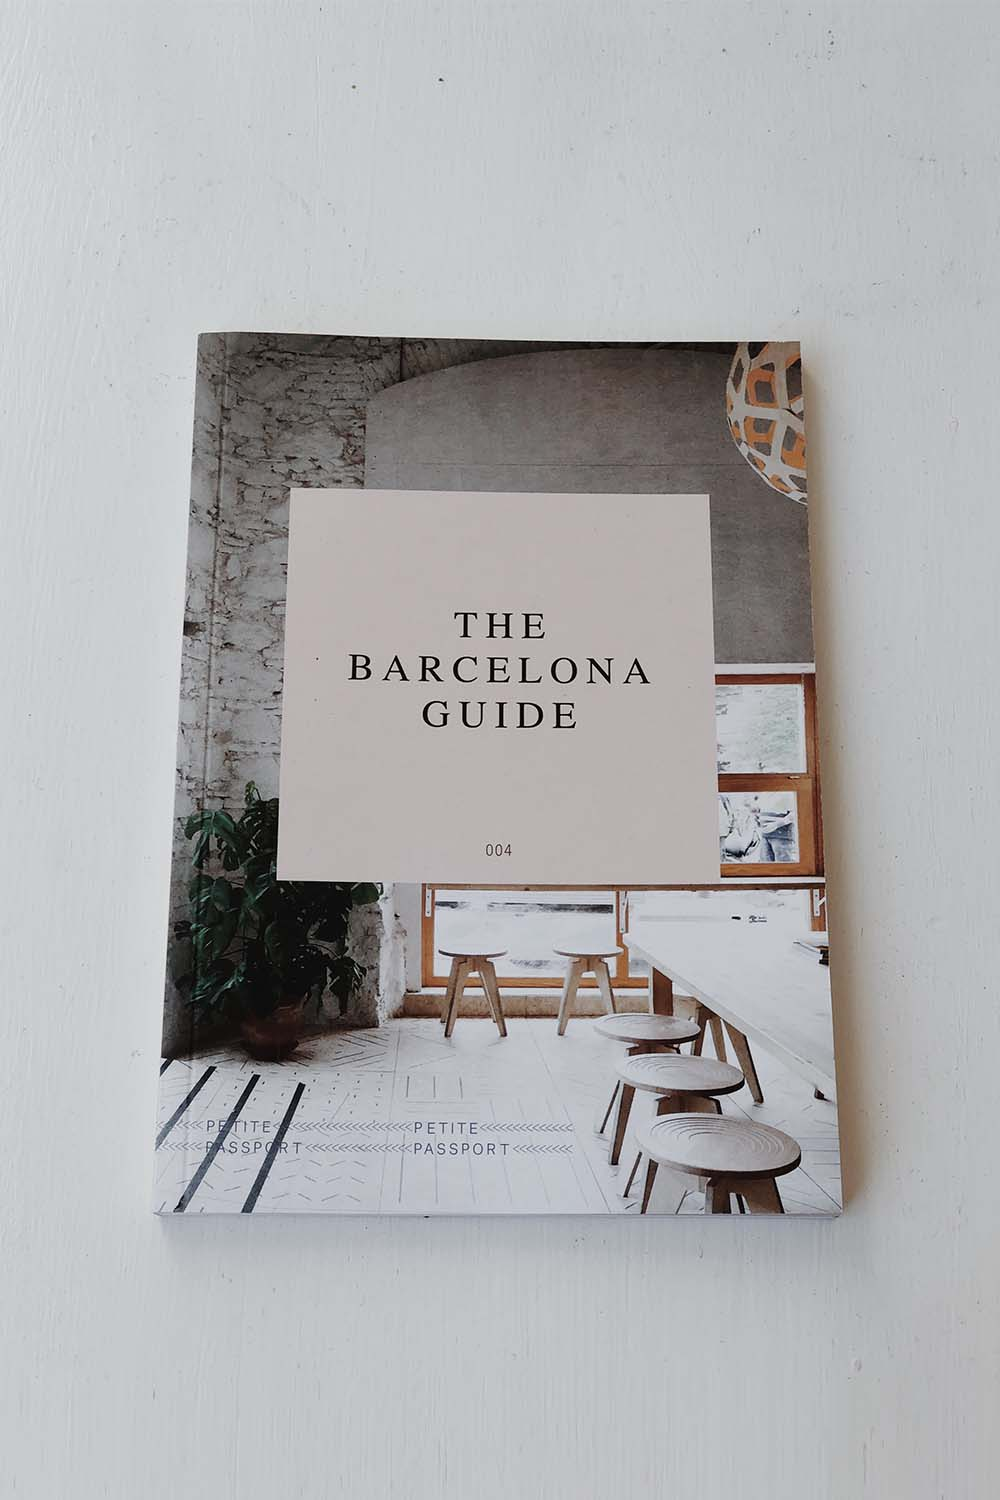 The Barcelona Guide by Petite Passport